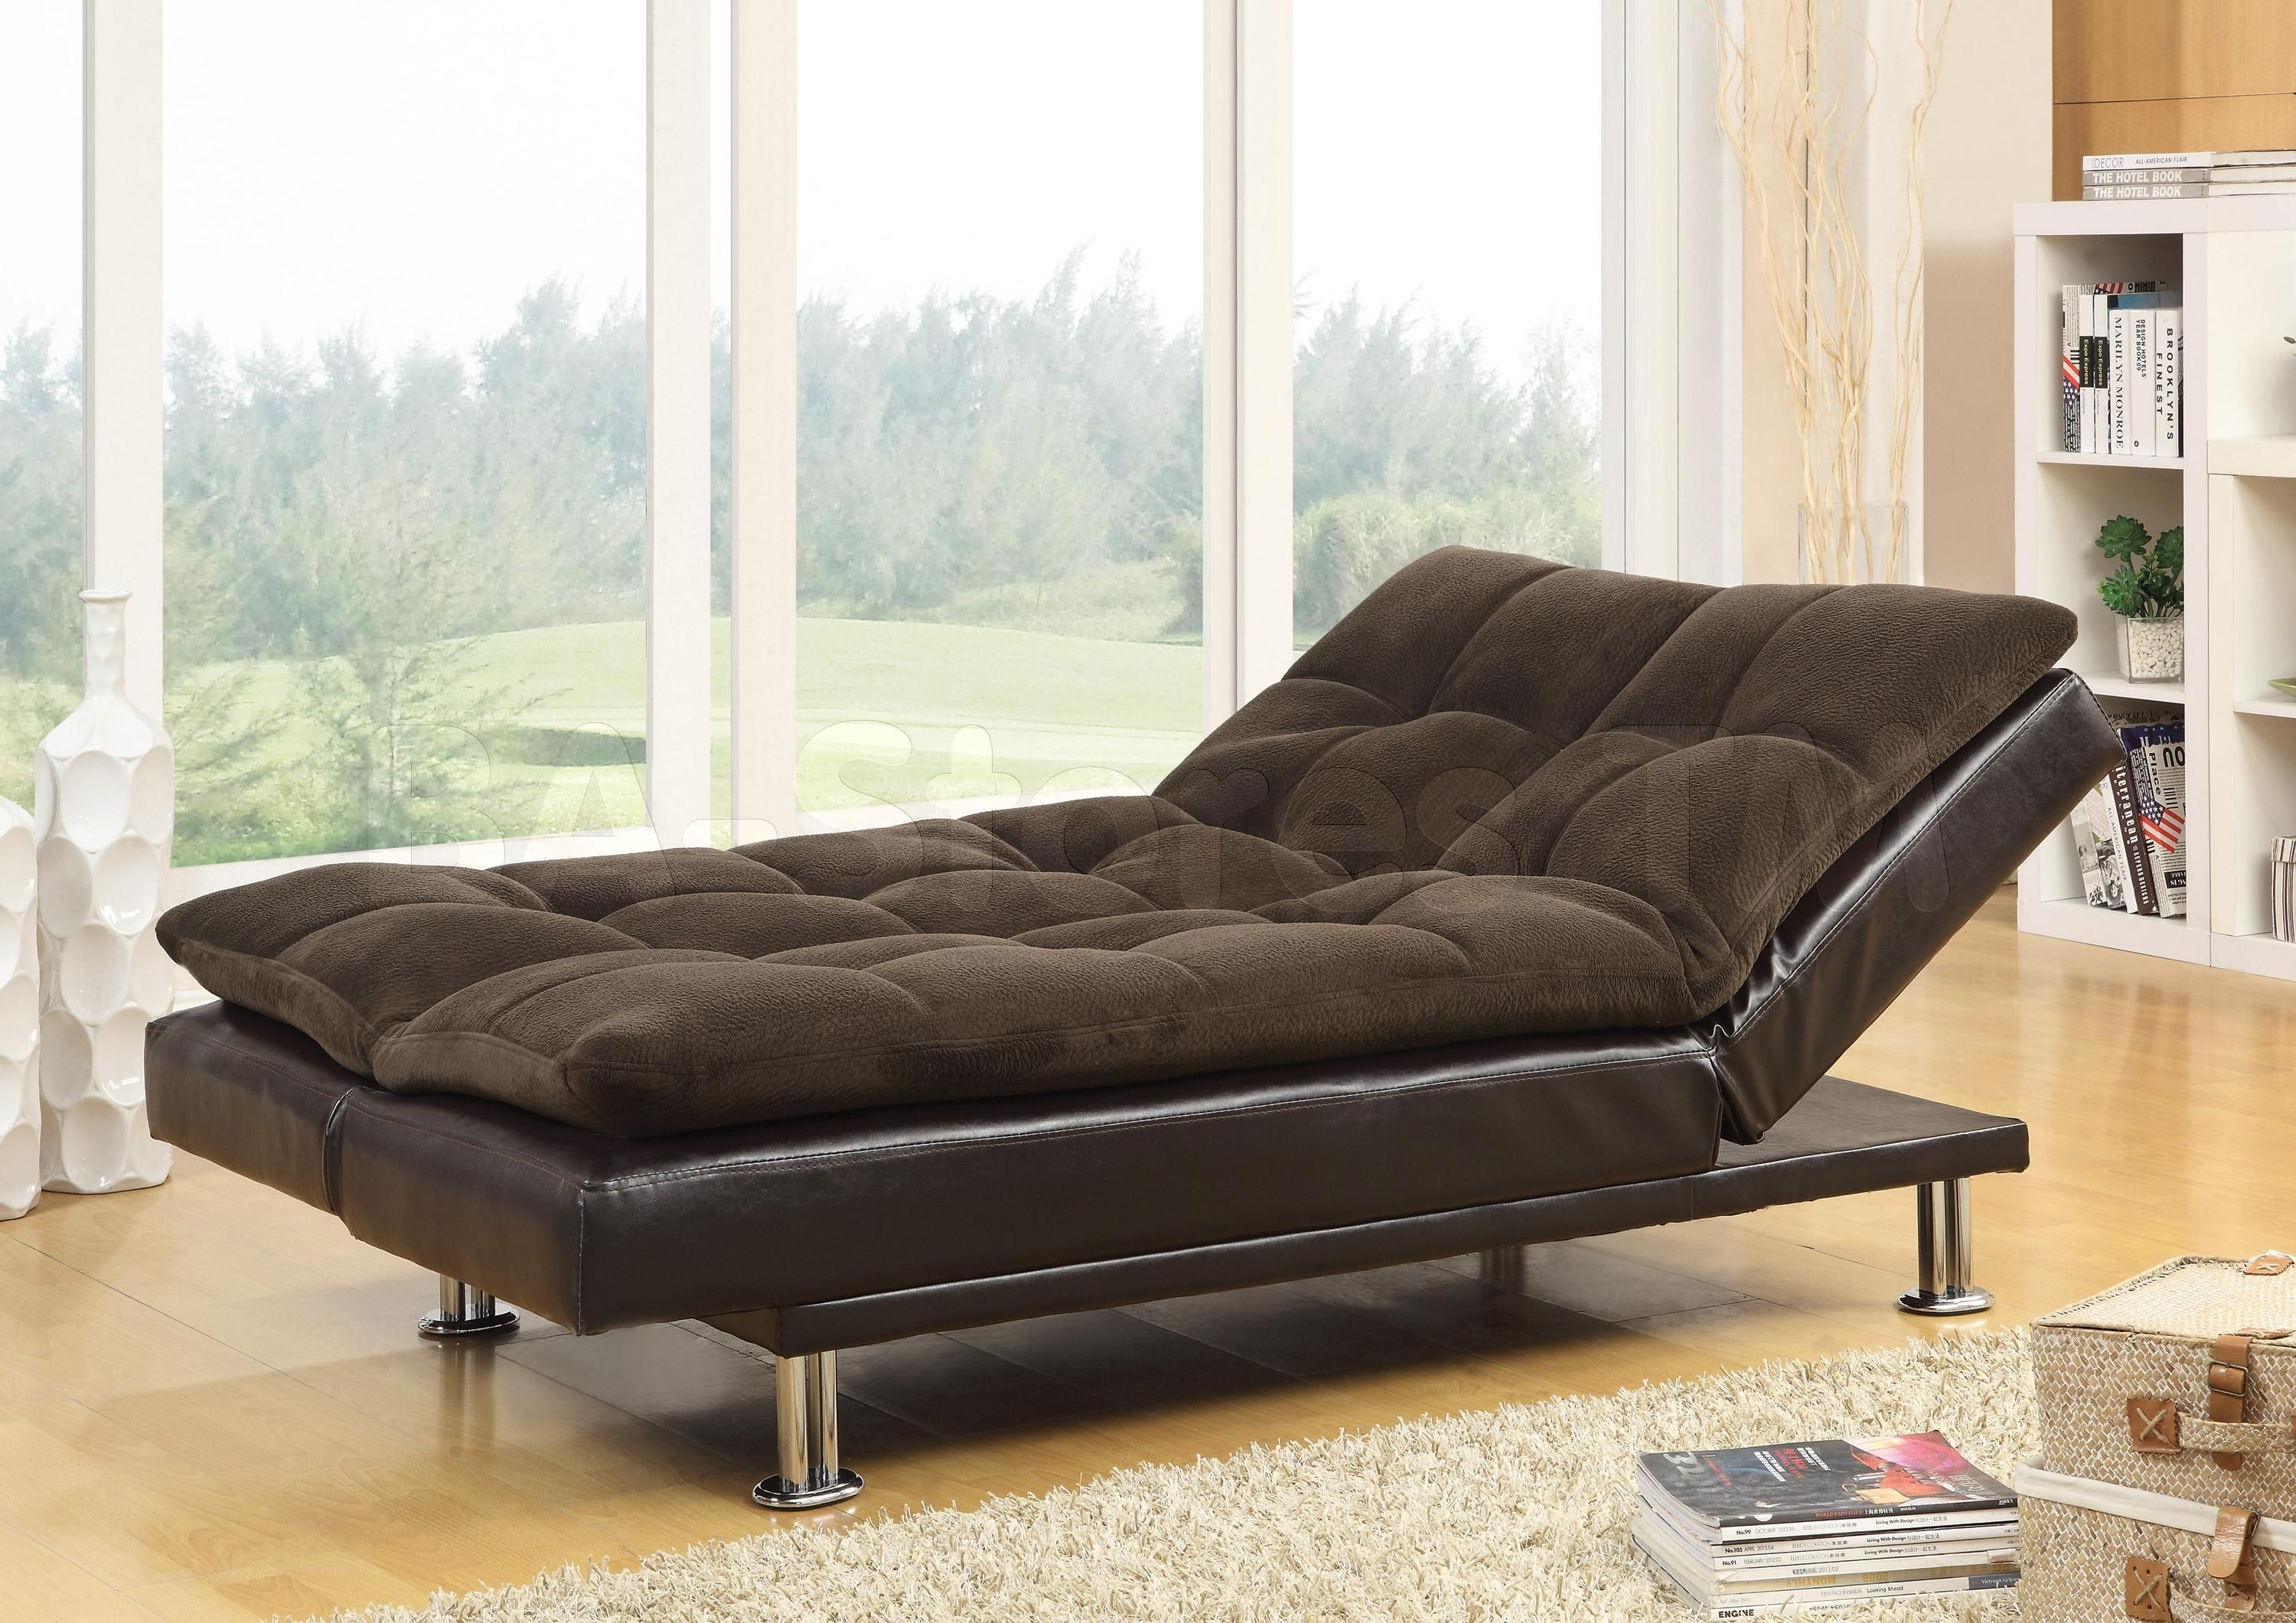 Modern Futon Sofa Bed With Chrome Legs And Carpet Idea